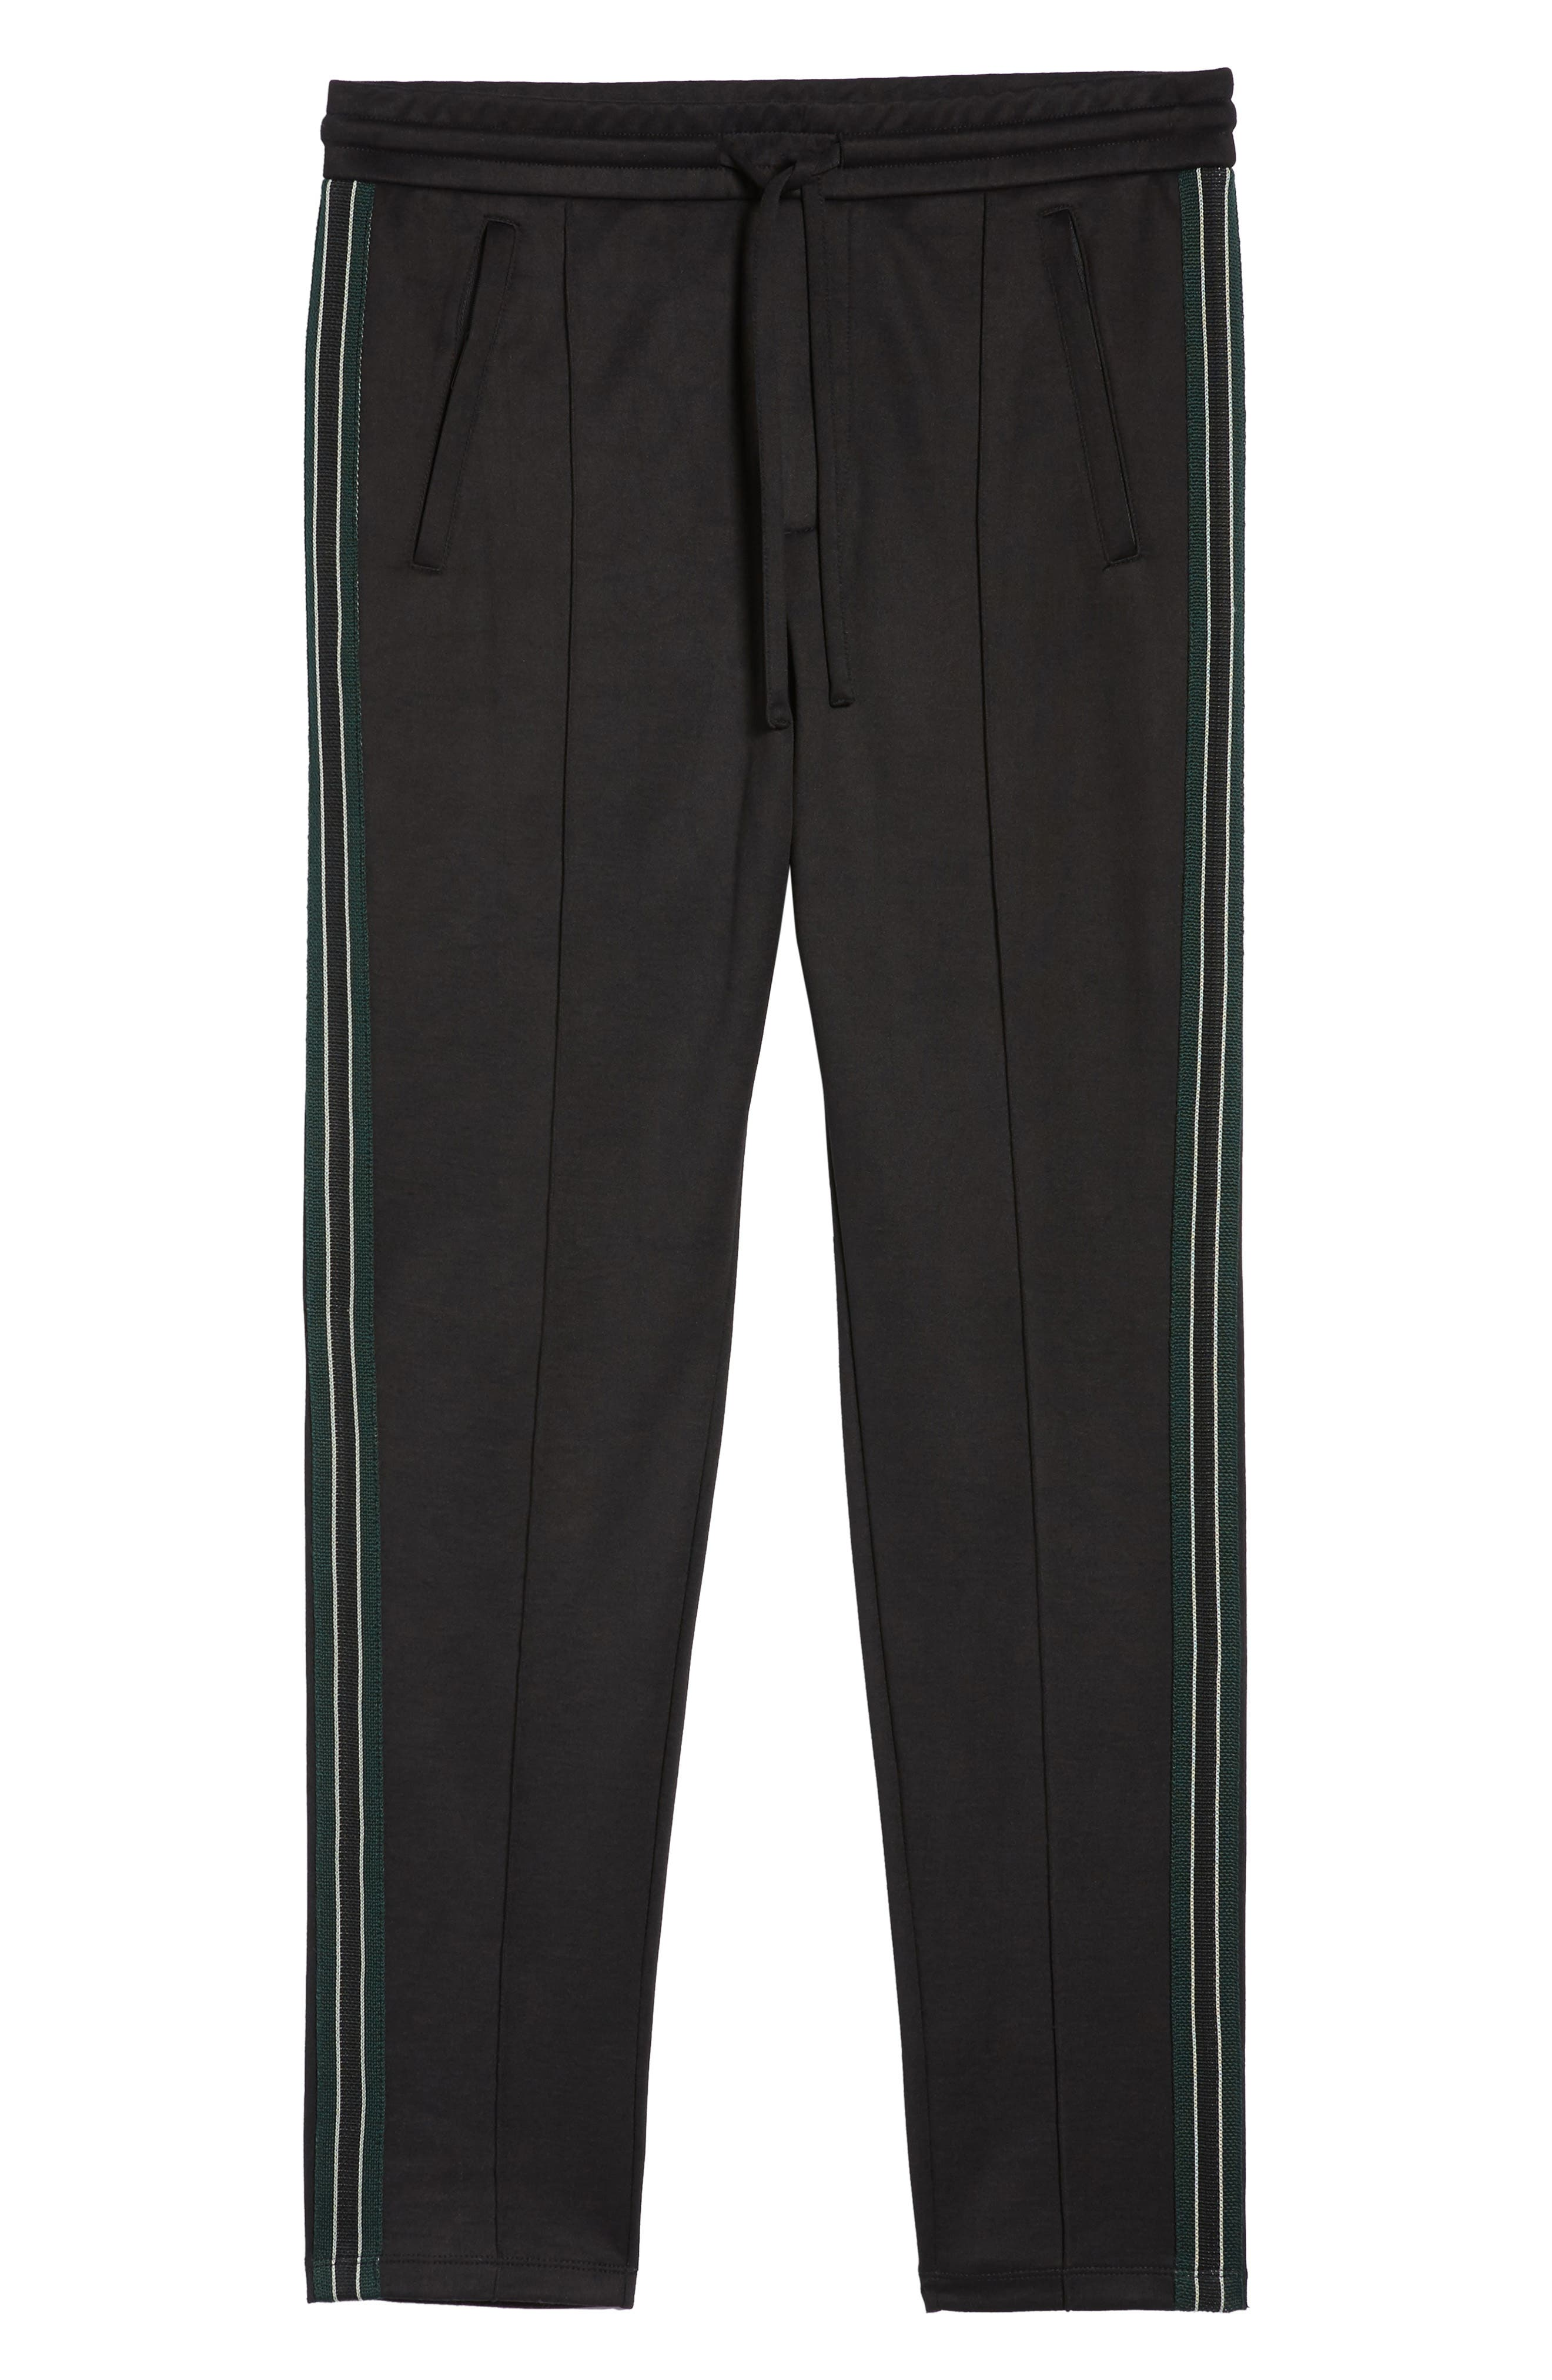 Slim Fit Track Pants,                             Alternate thumbnail 6, color,                             Black